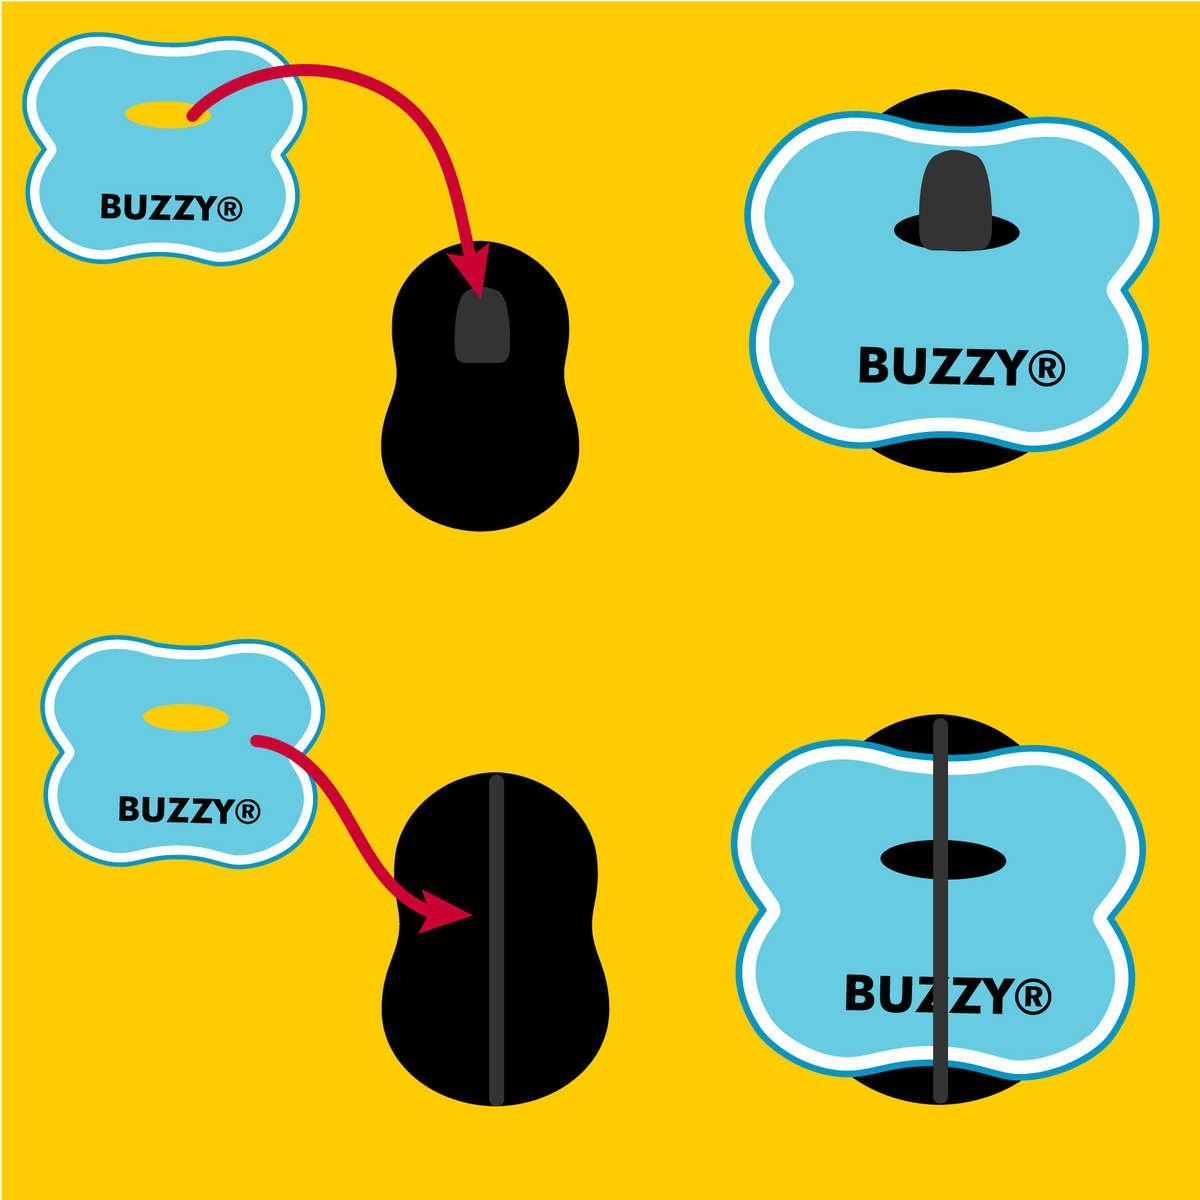 BUZZY ENTERPRISES INC. | California Companies Directory